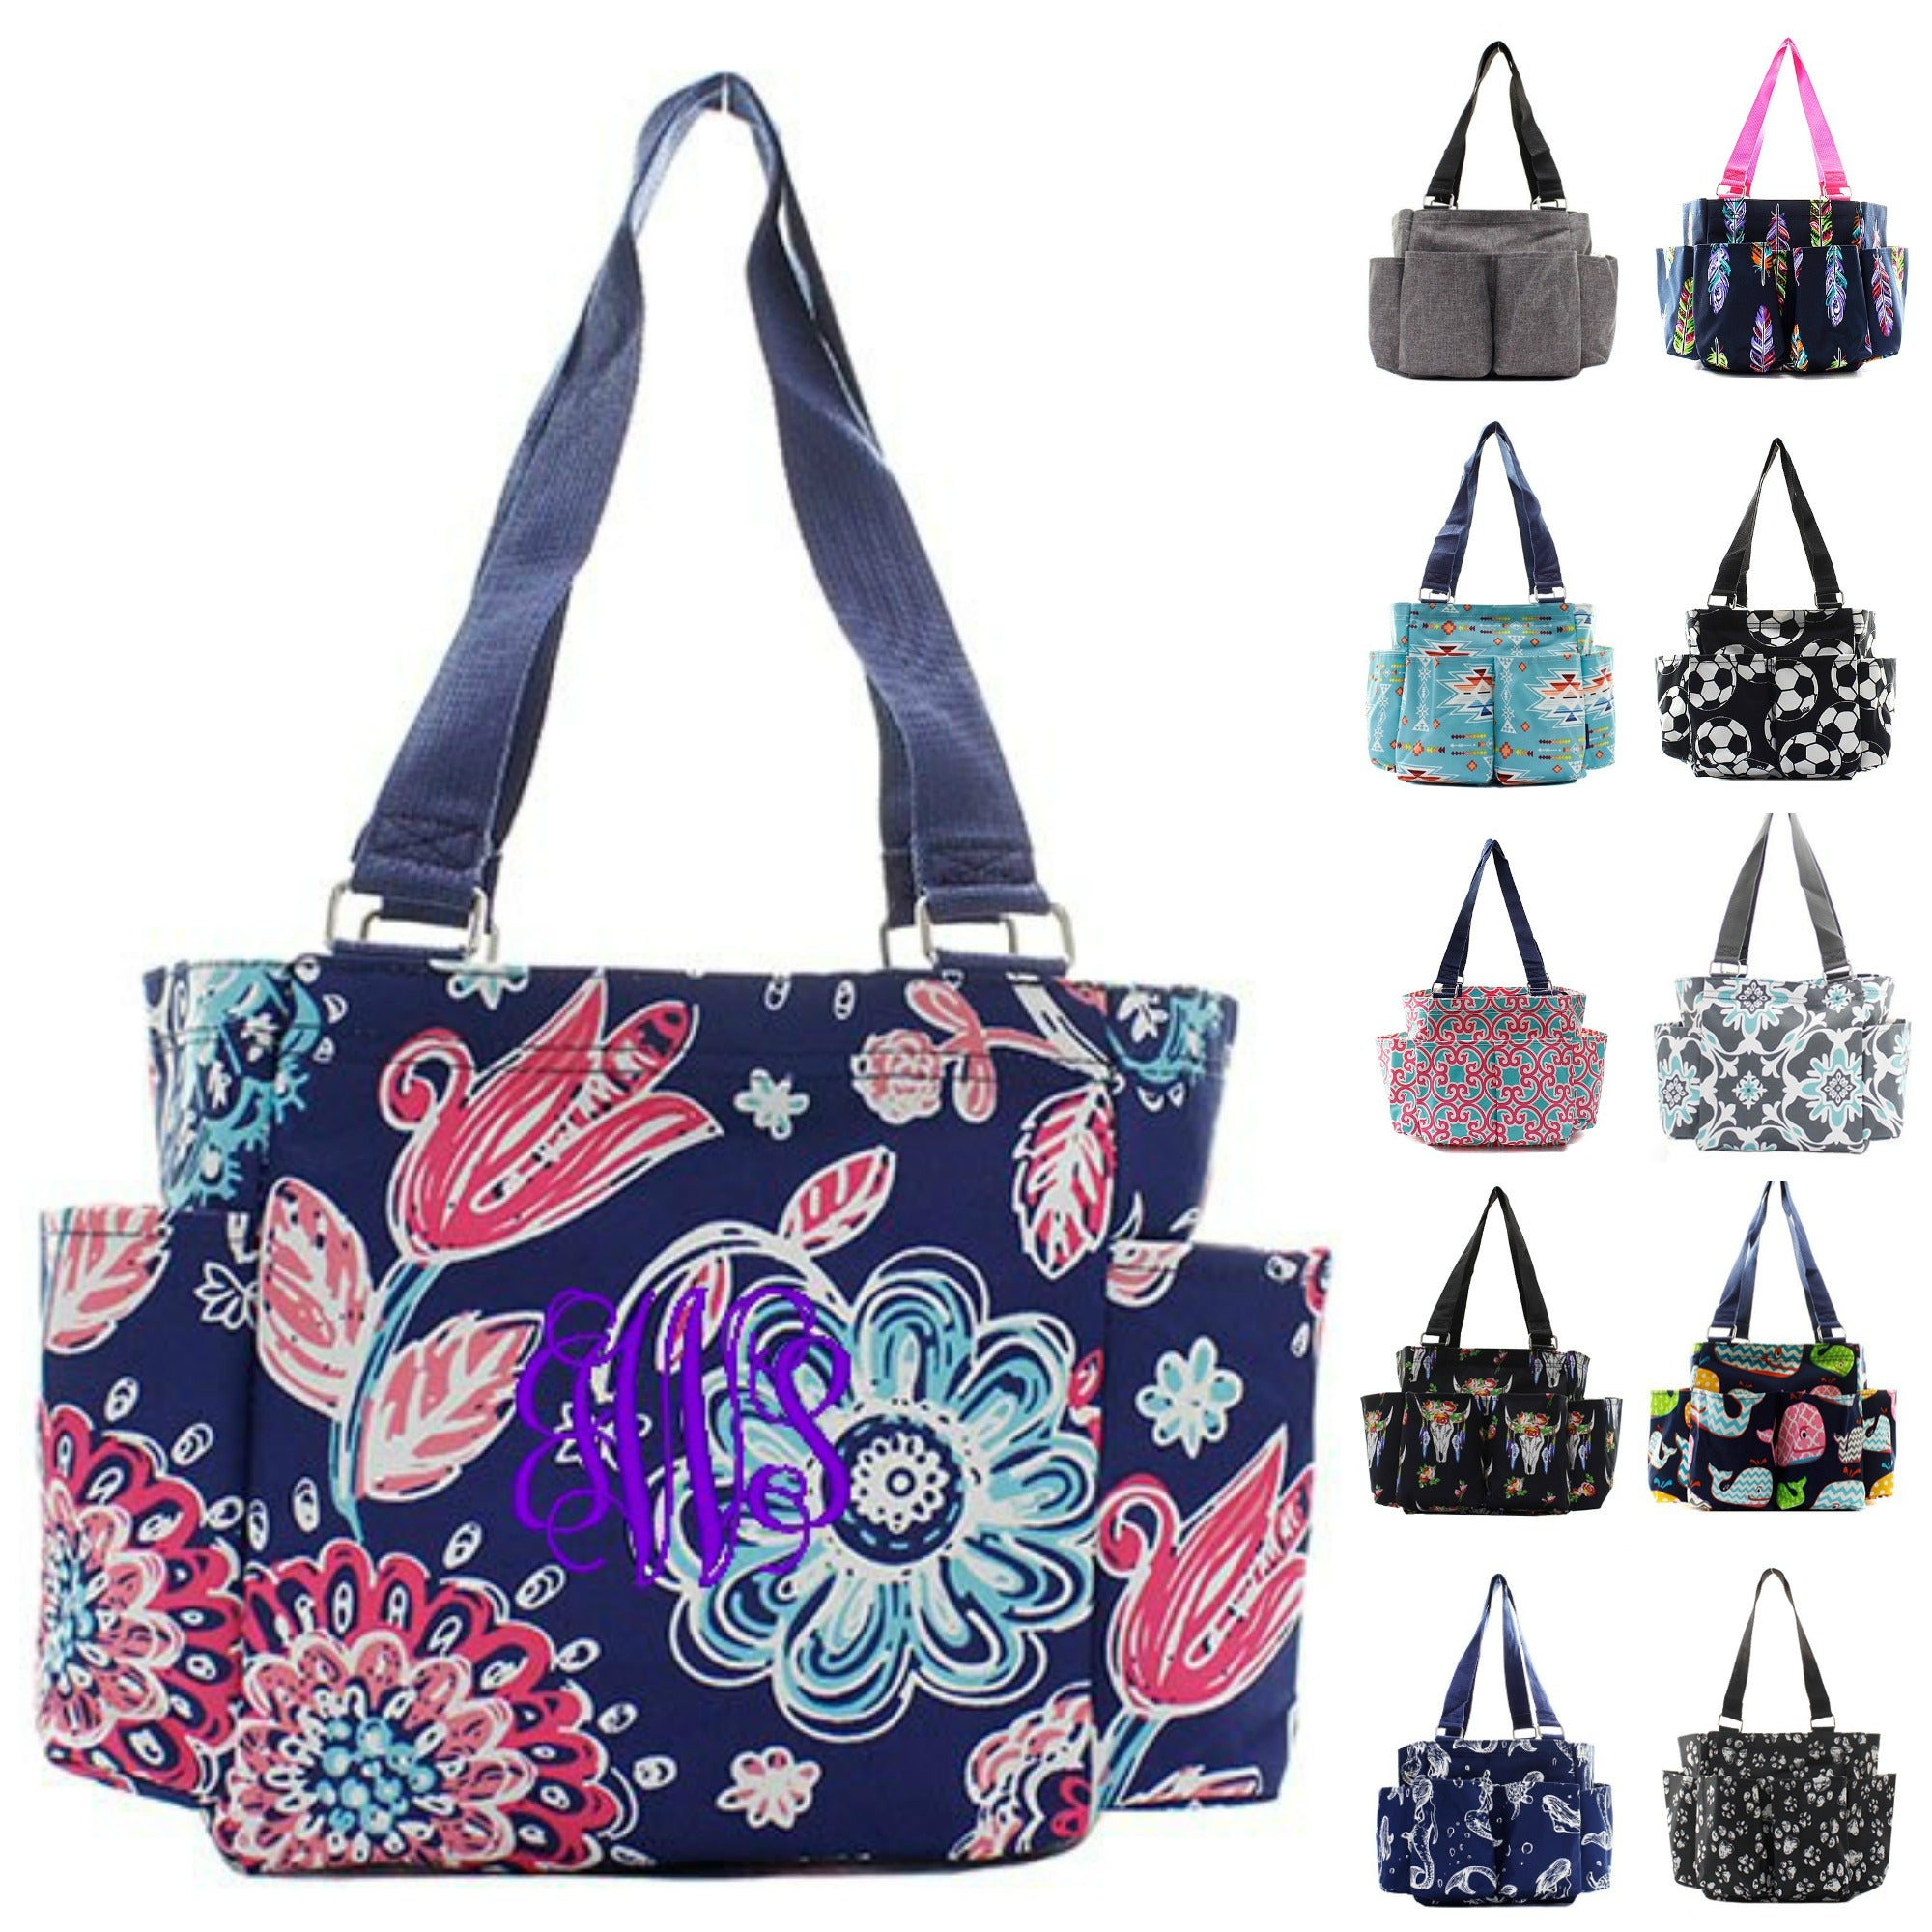 Personalized Caddy Organizing Tote Bag – Gifts Happen Here e91703fe4f8d7